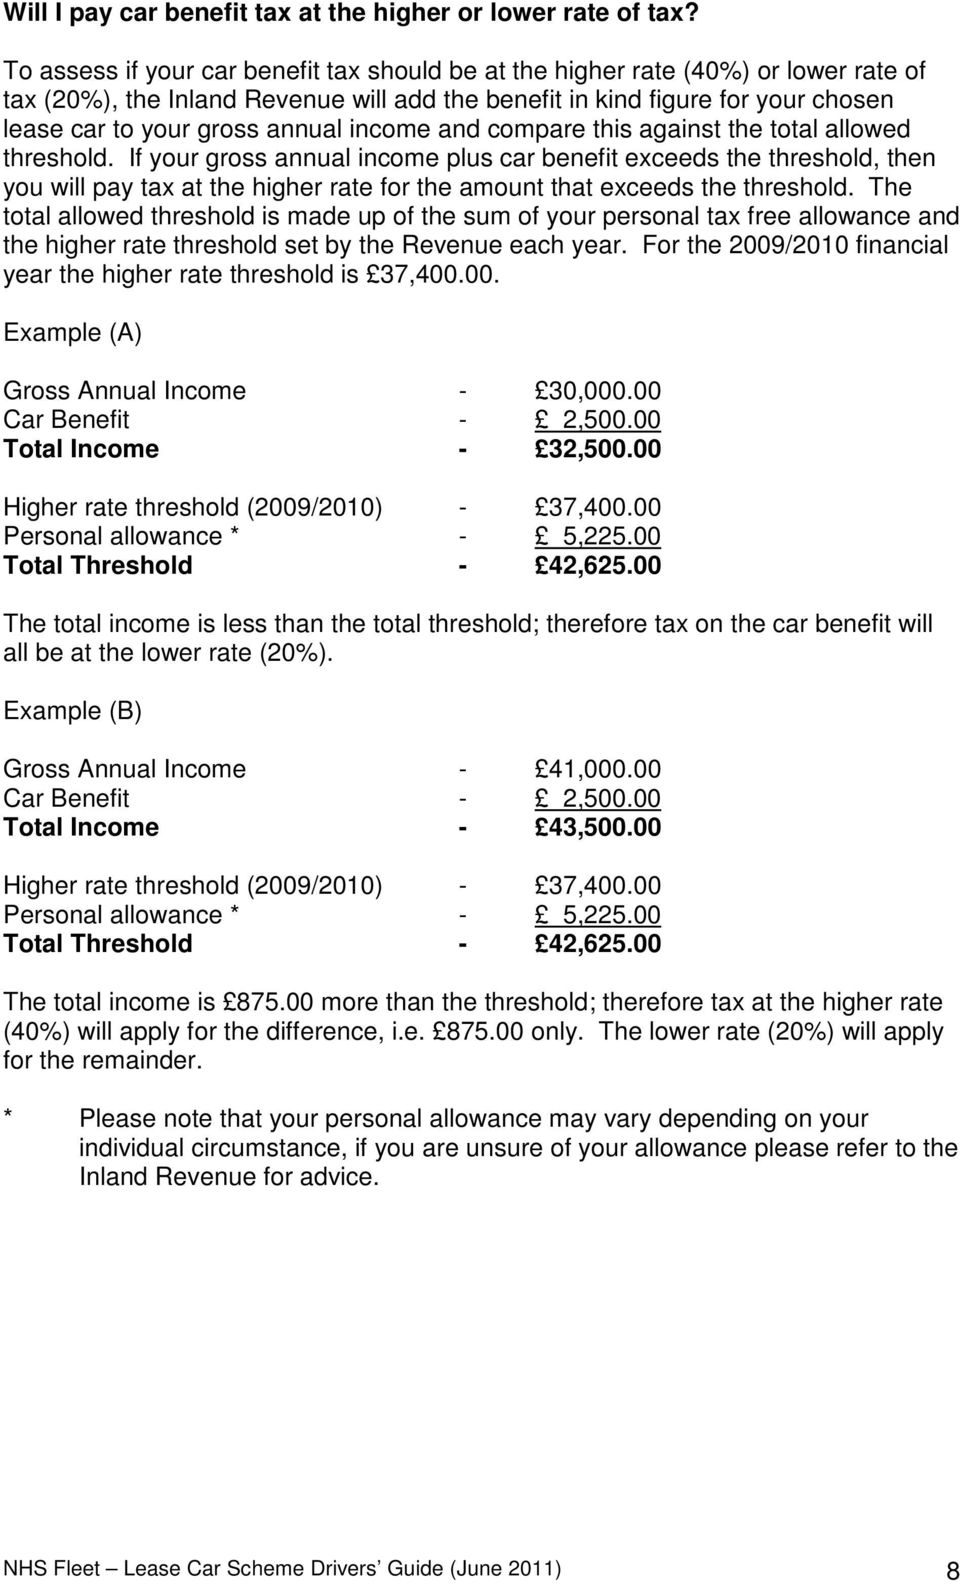 income and compare this against the total allowed threshold.